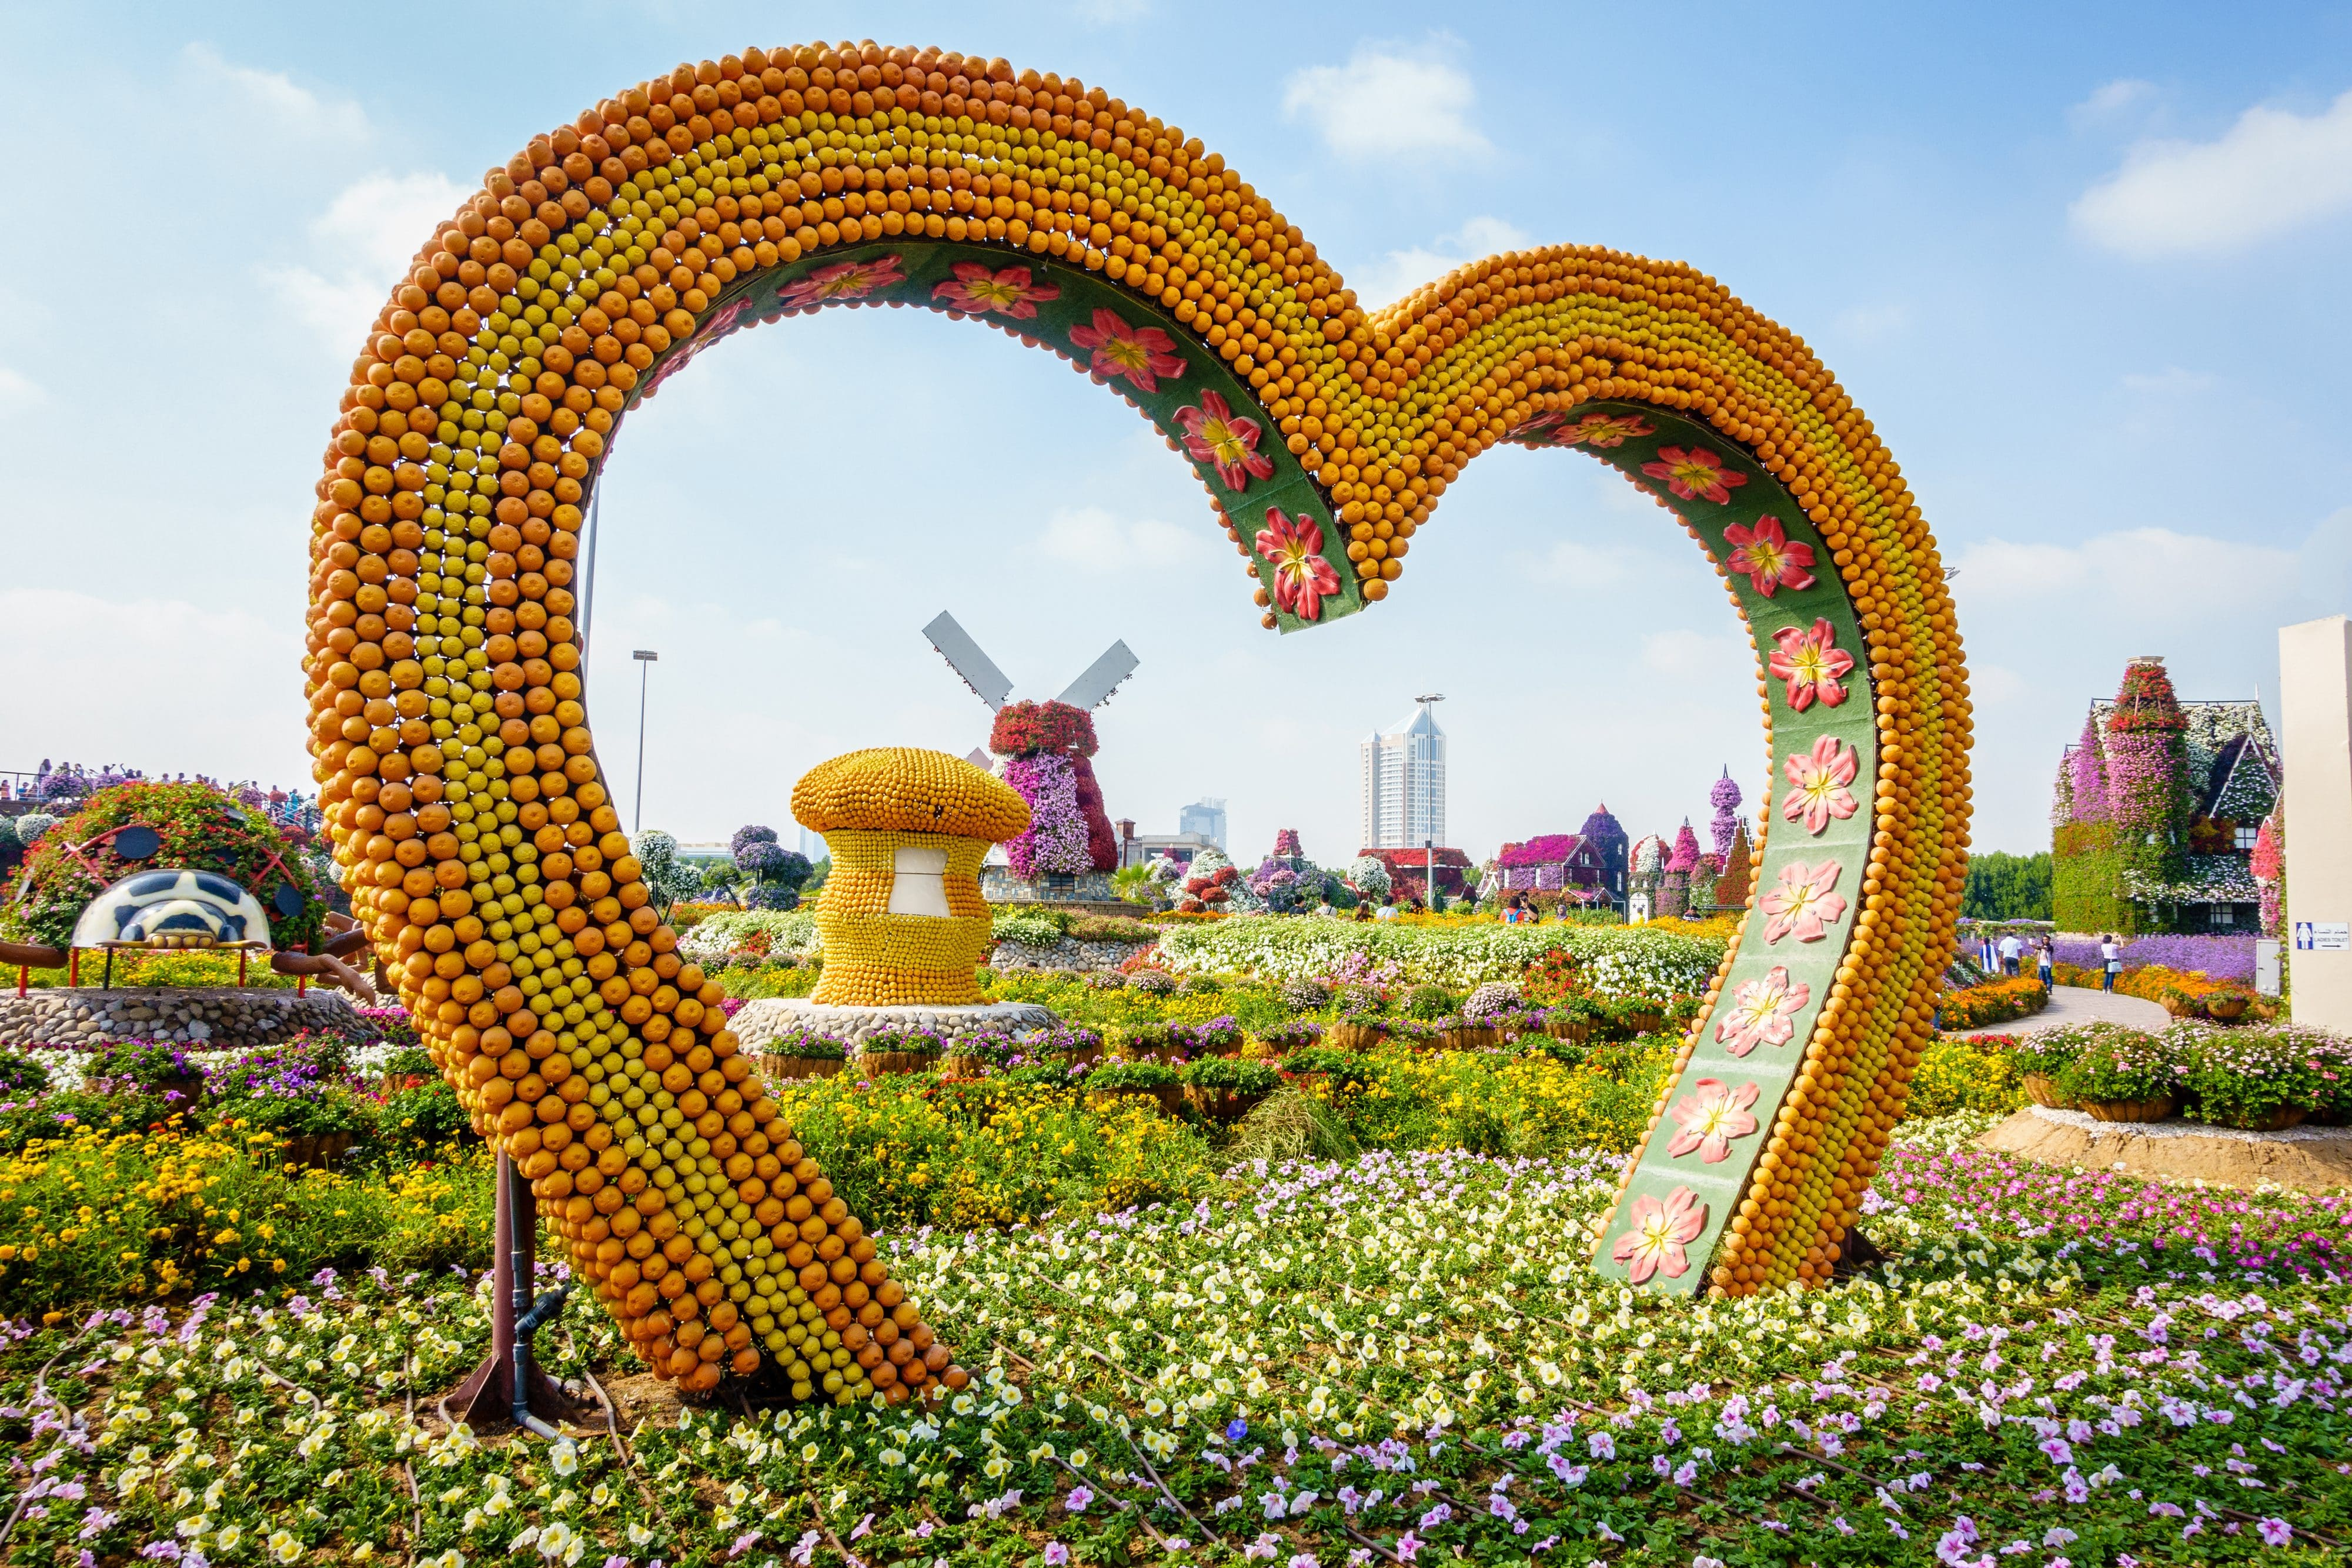 A heart made of fruit and a windmill made of flowers at Miracle Garden